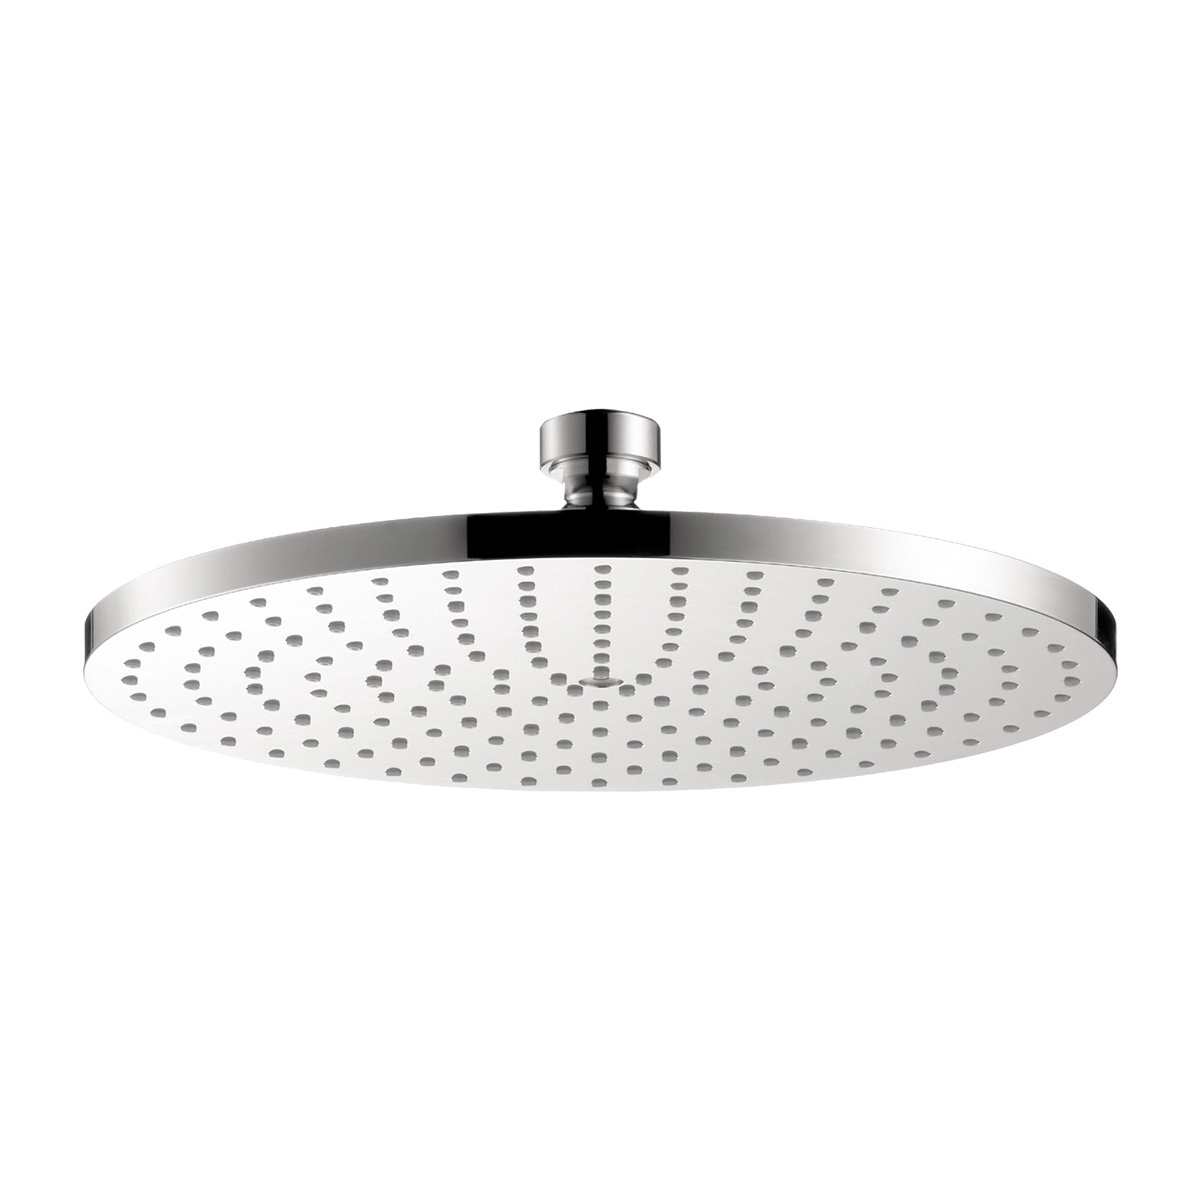 Bath4All - Hansgrohe 28494001 Chrome Axor Rain 2.5 GPM Shower Head